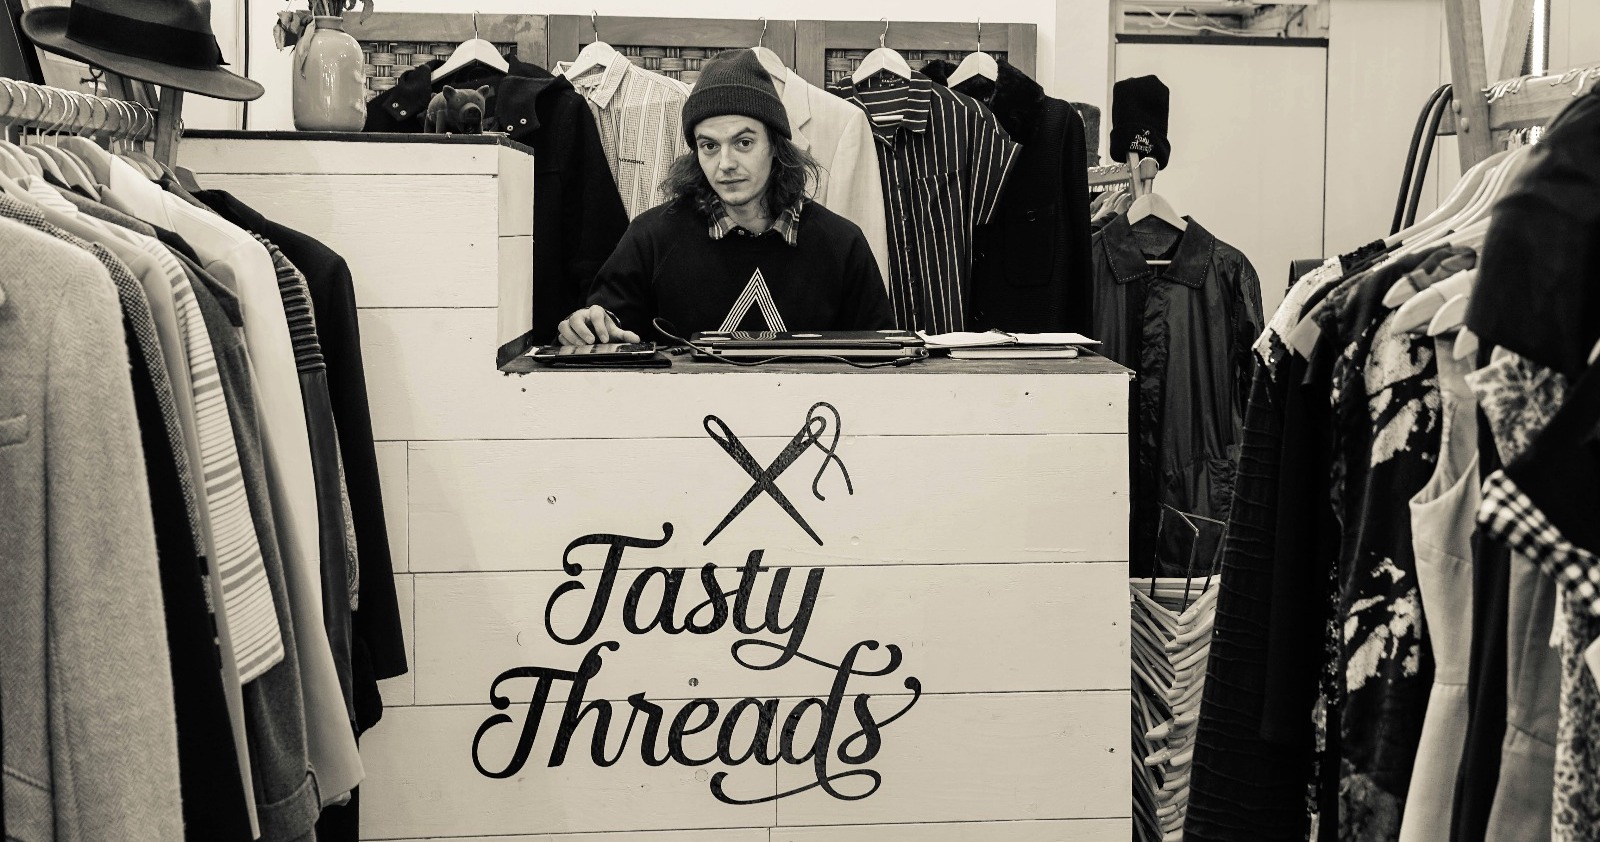 TastyThreads at the Dublin Flea Christmas Market 2018